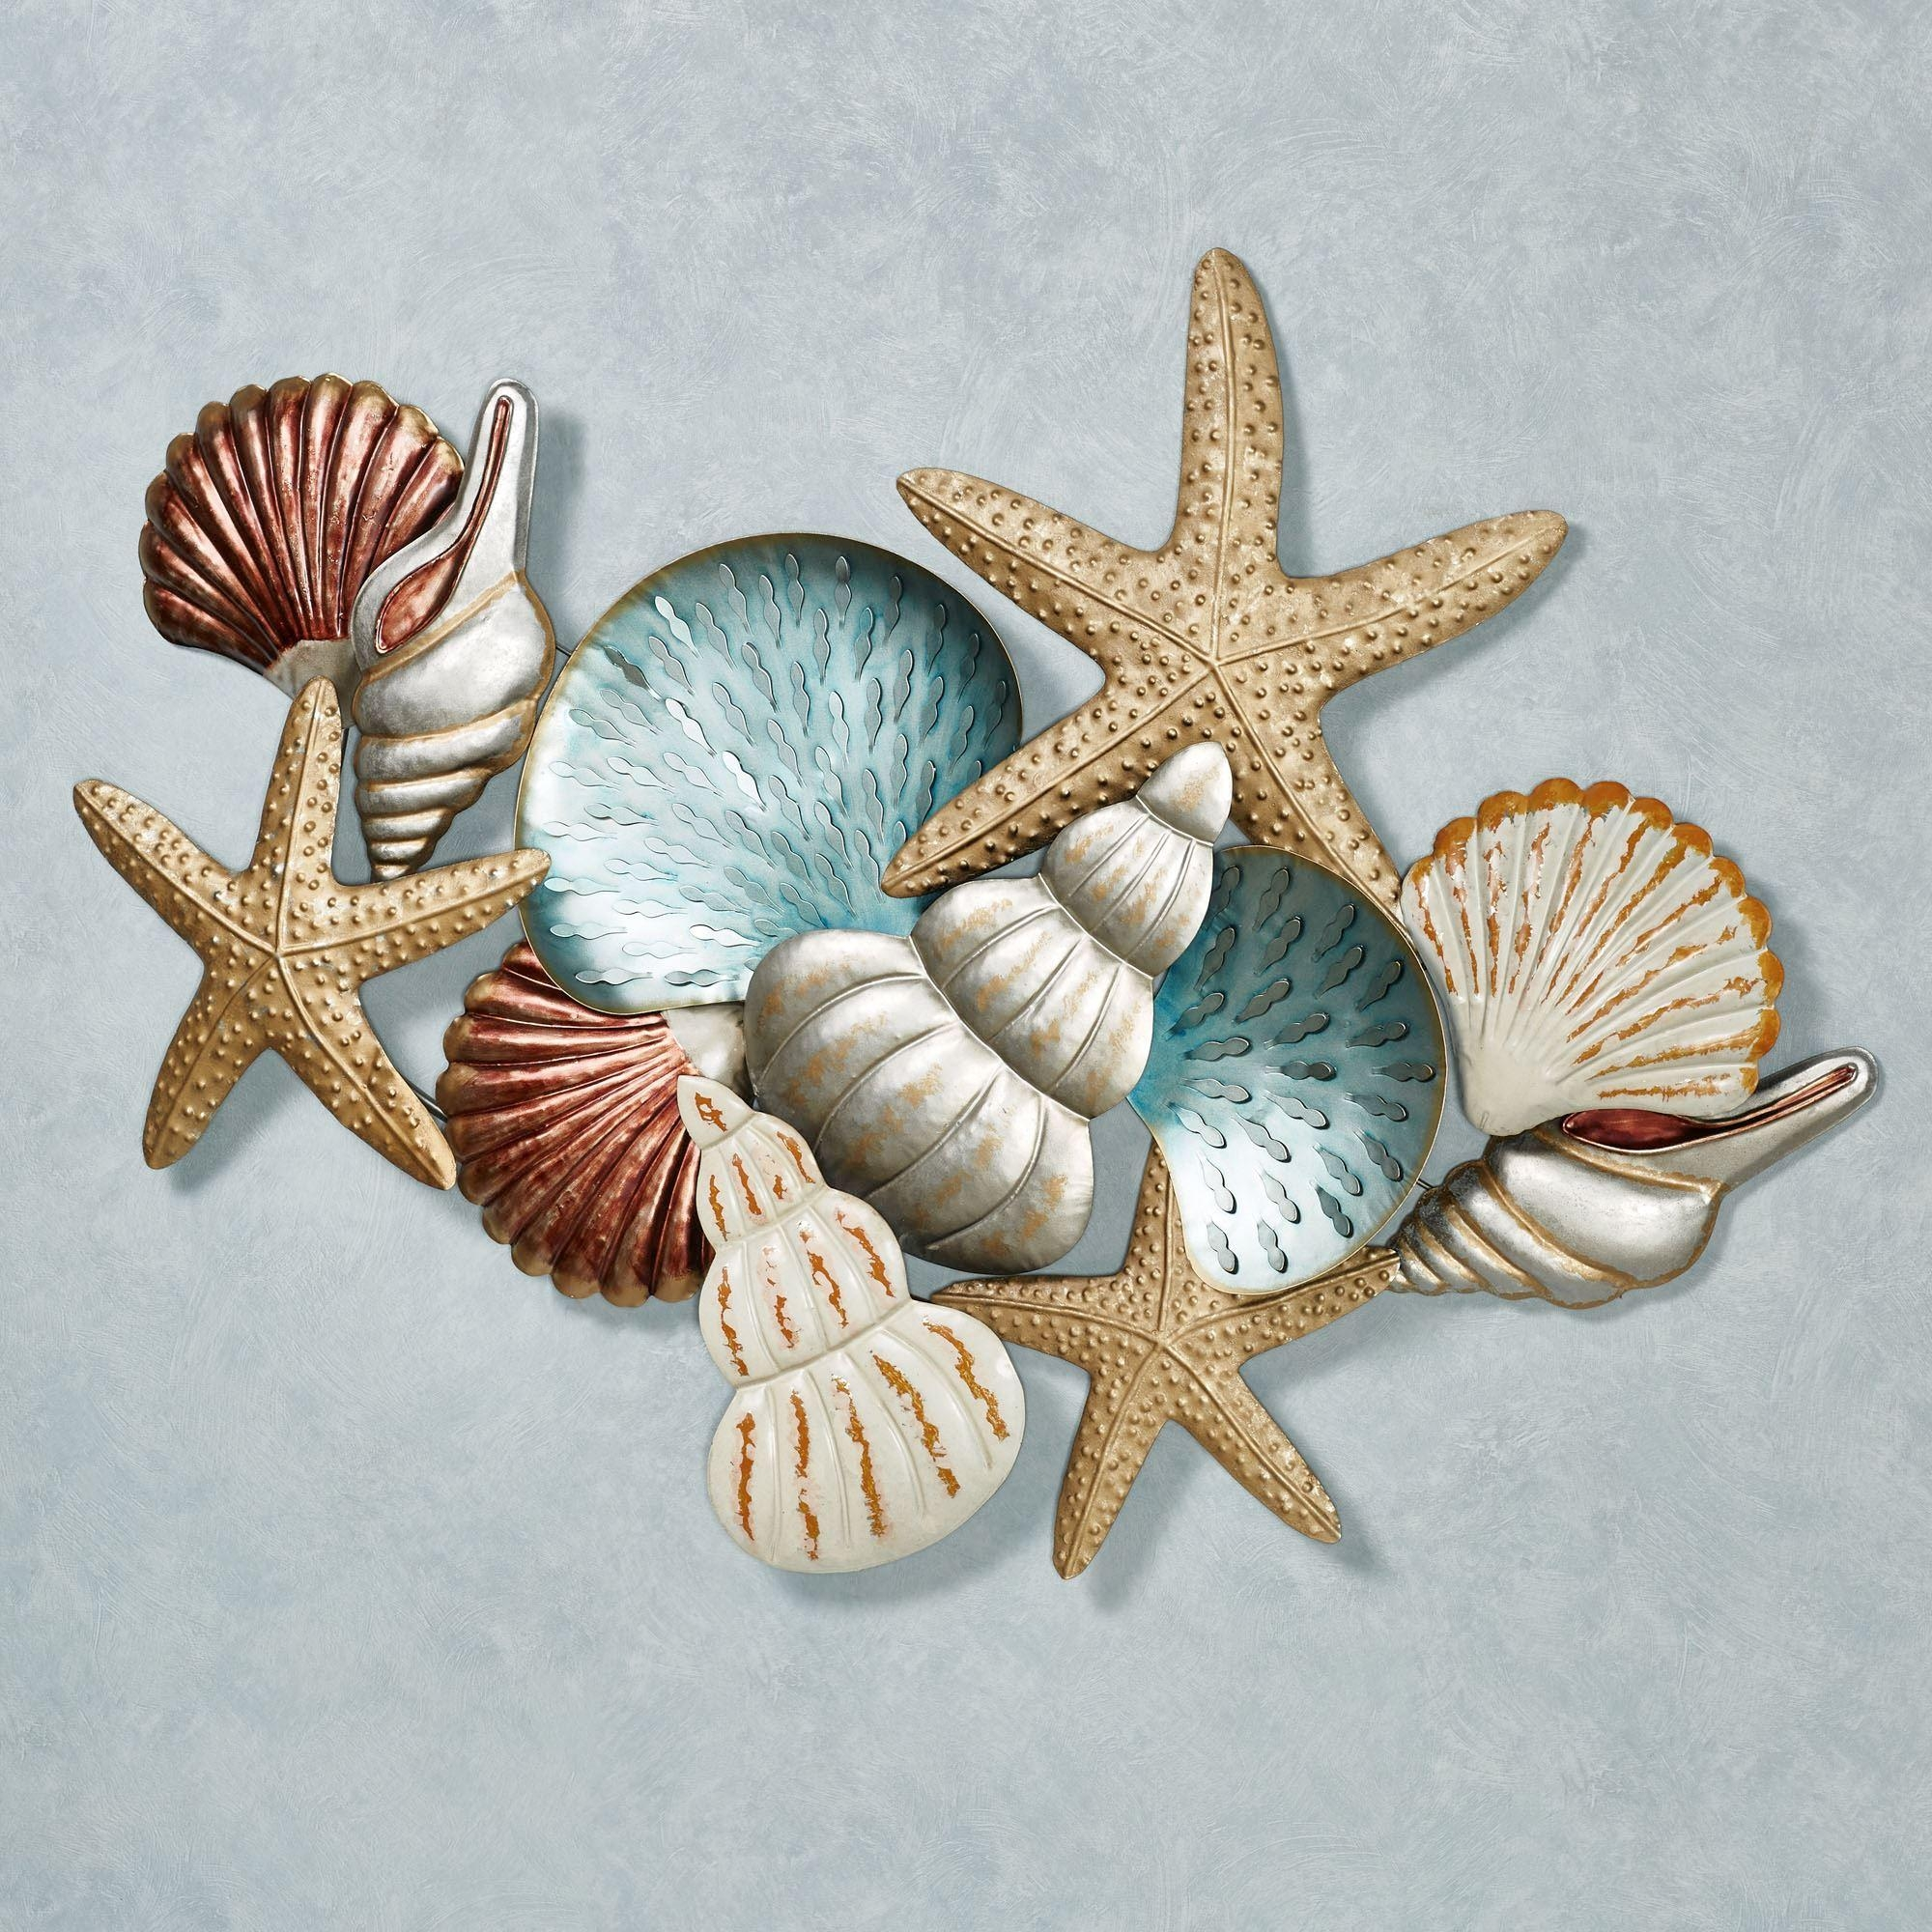 Coastal Home Decor | Touch Of Class Regarding Seaside Metal Wall Art (Image 4 of 20)